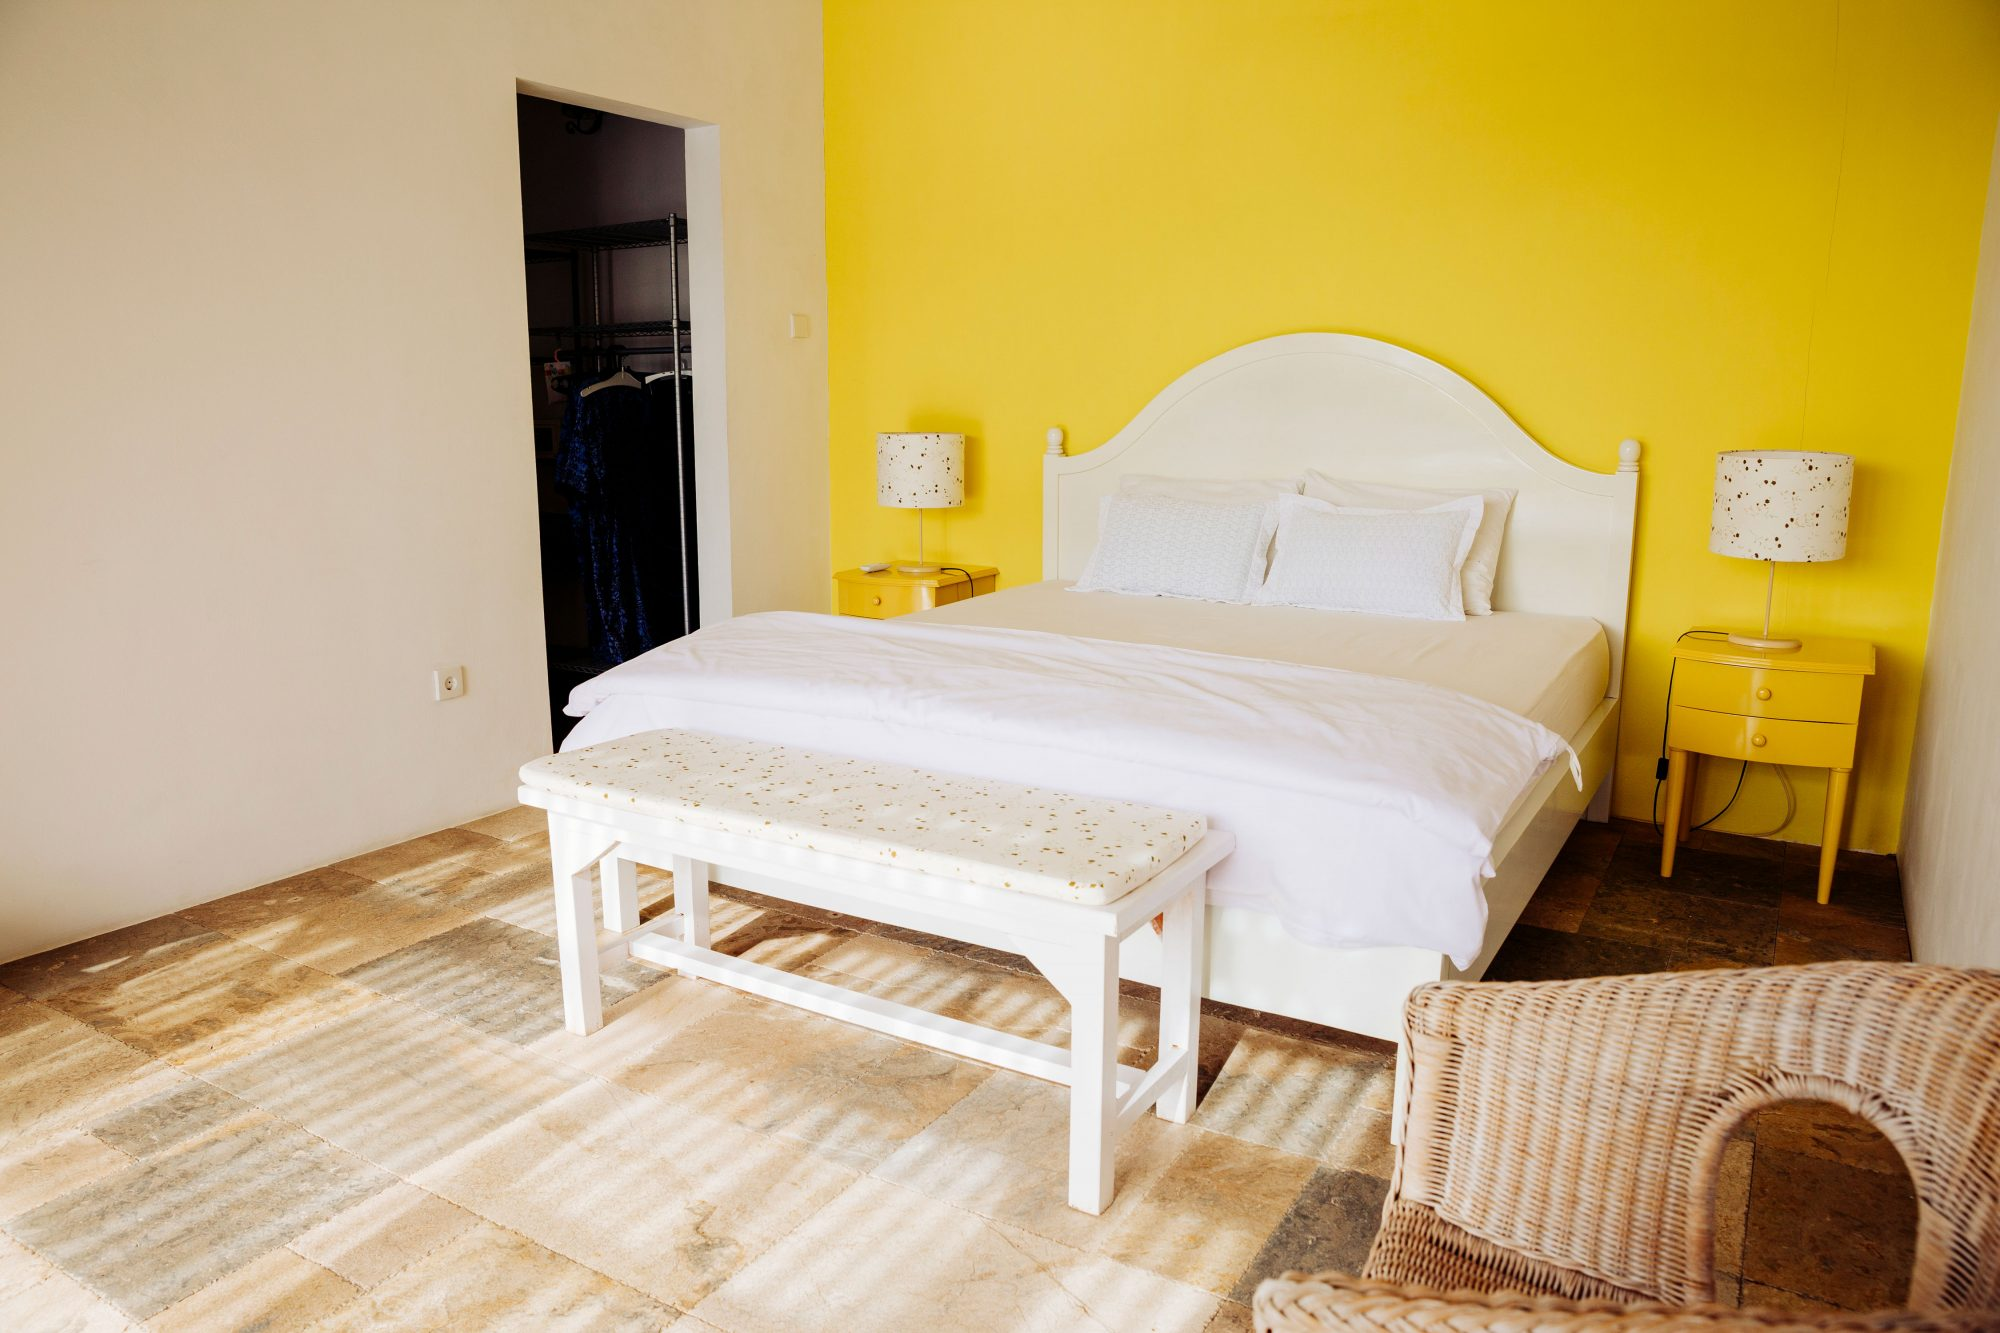 Bedroom Accent Wall in Yellow